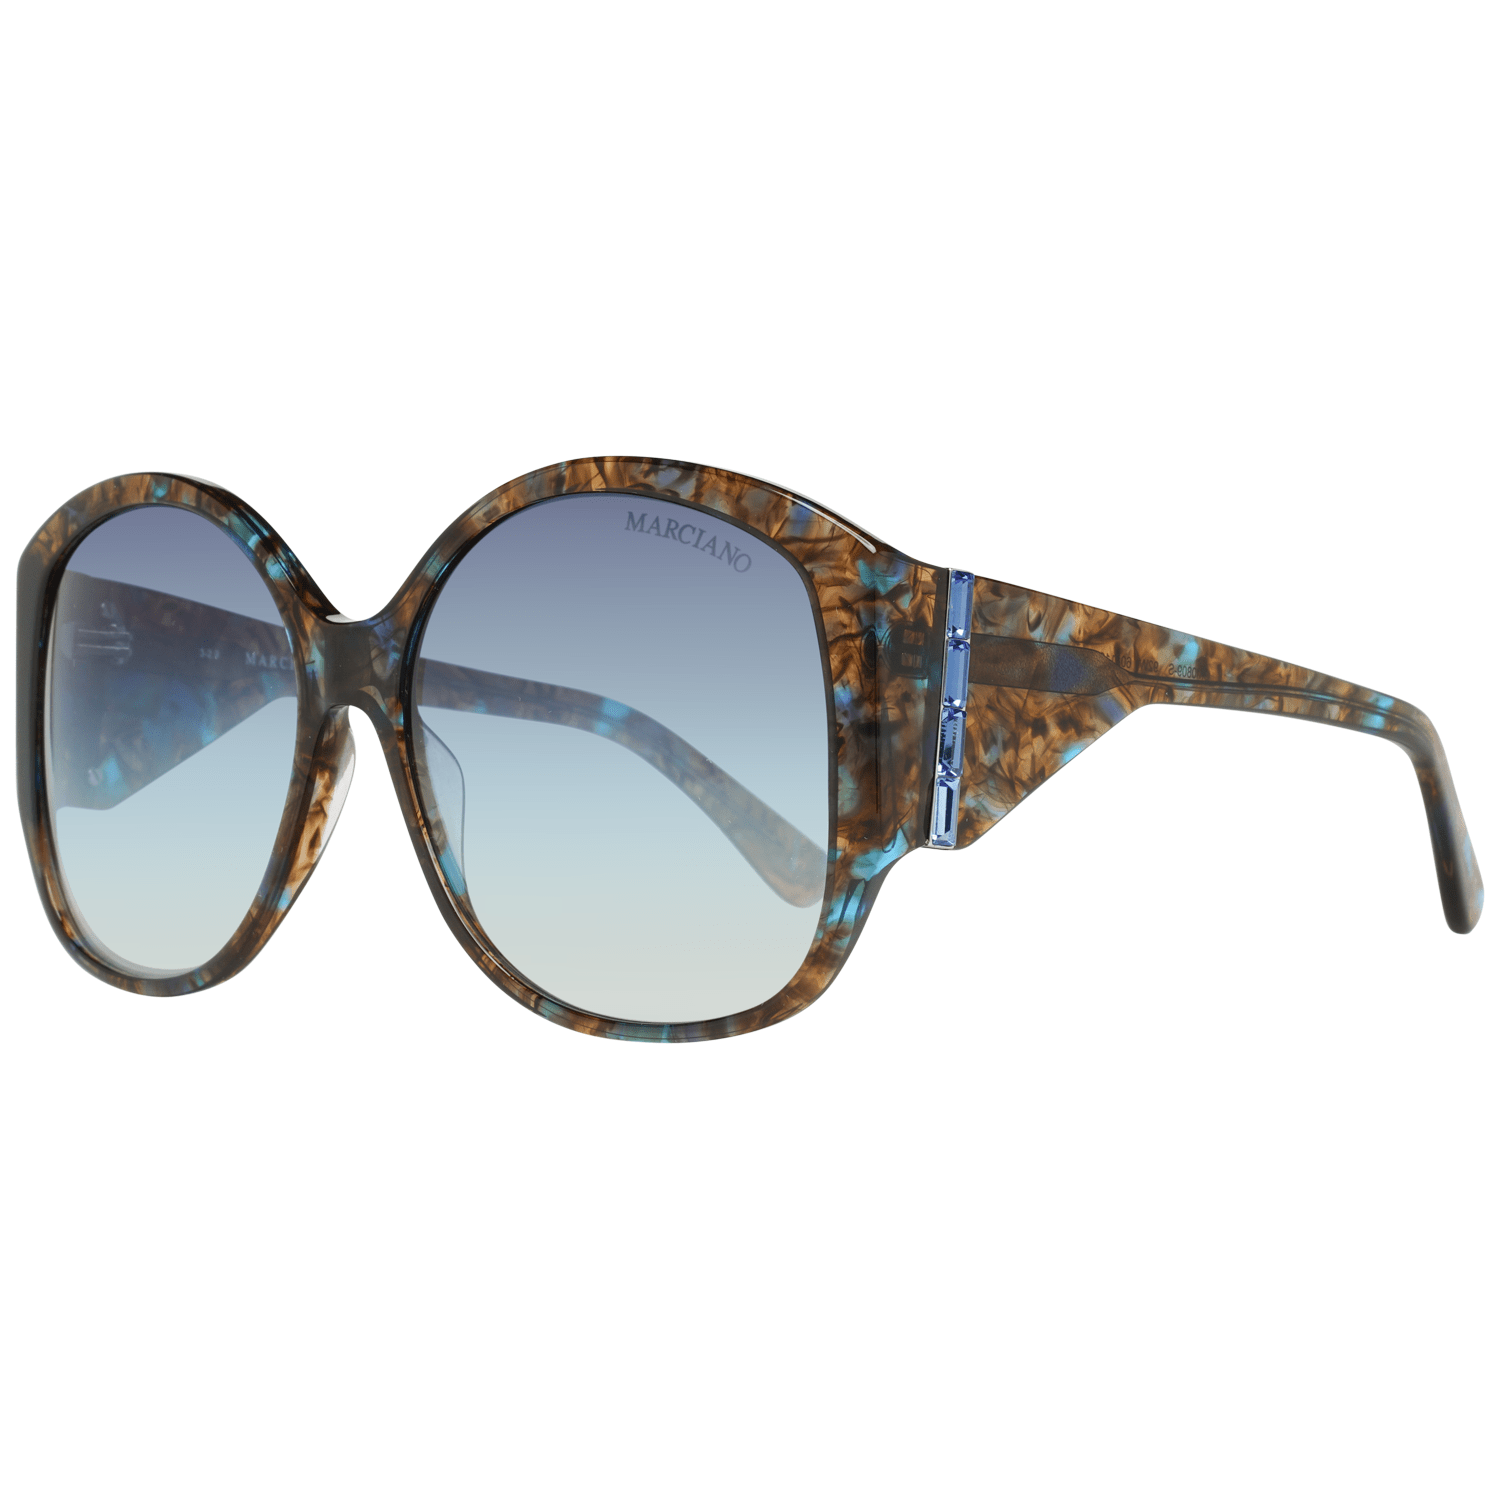 Guess By Marciano Women's Sunglasses Blue GM0809-S 6092W